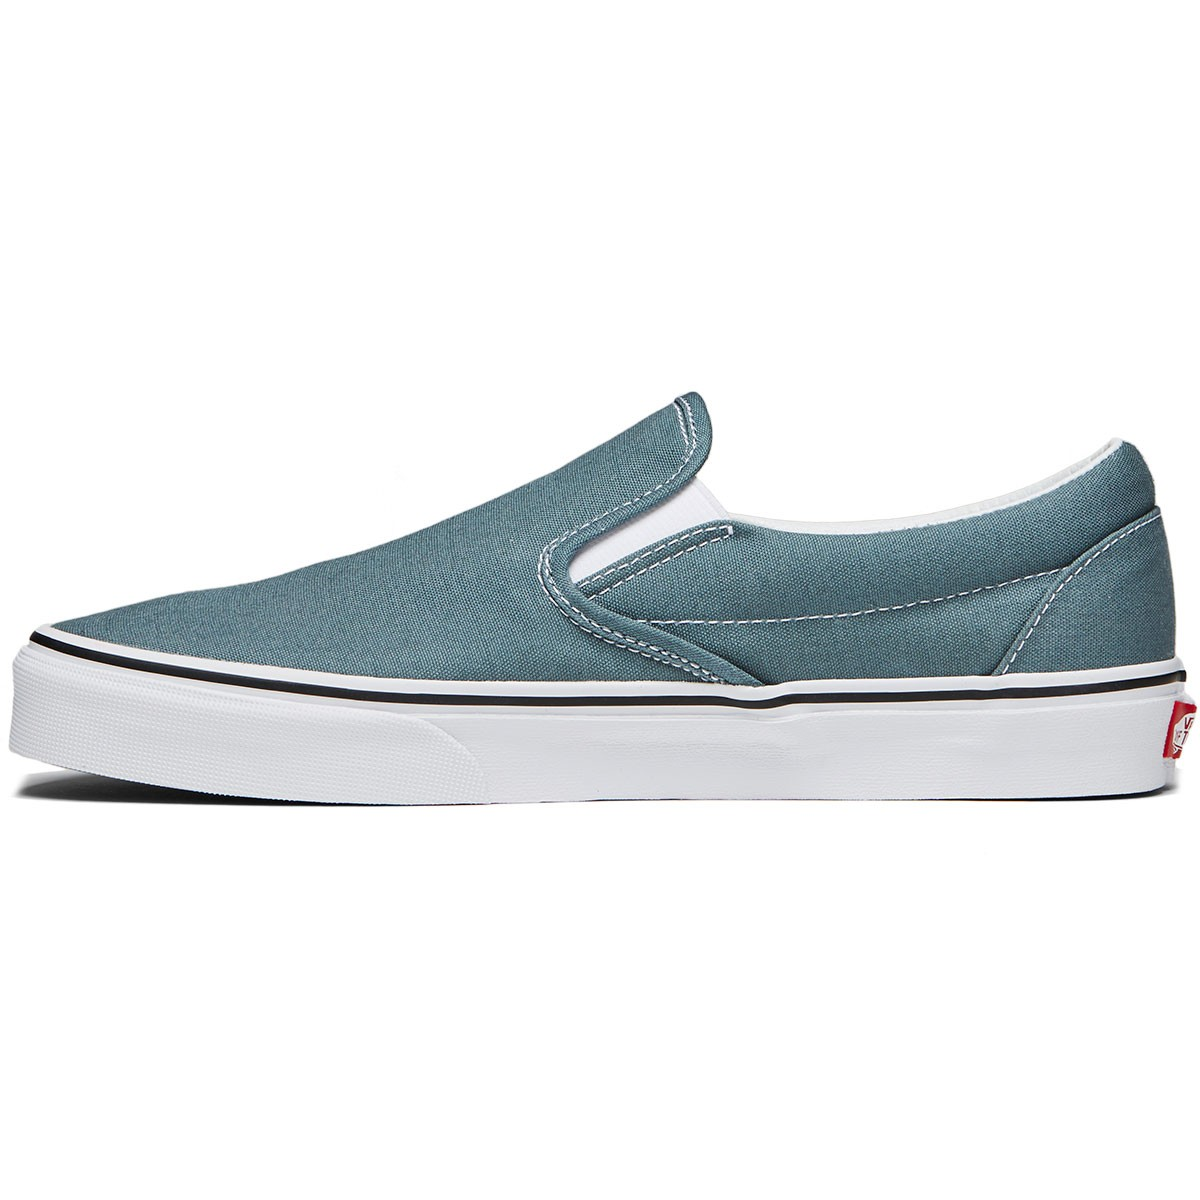 slip on vans green   Come and stroll! 7a286679b